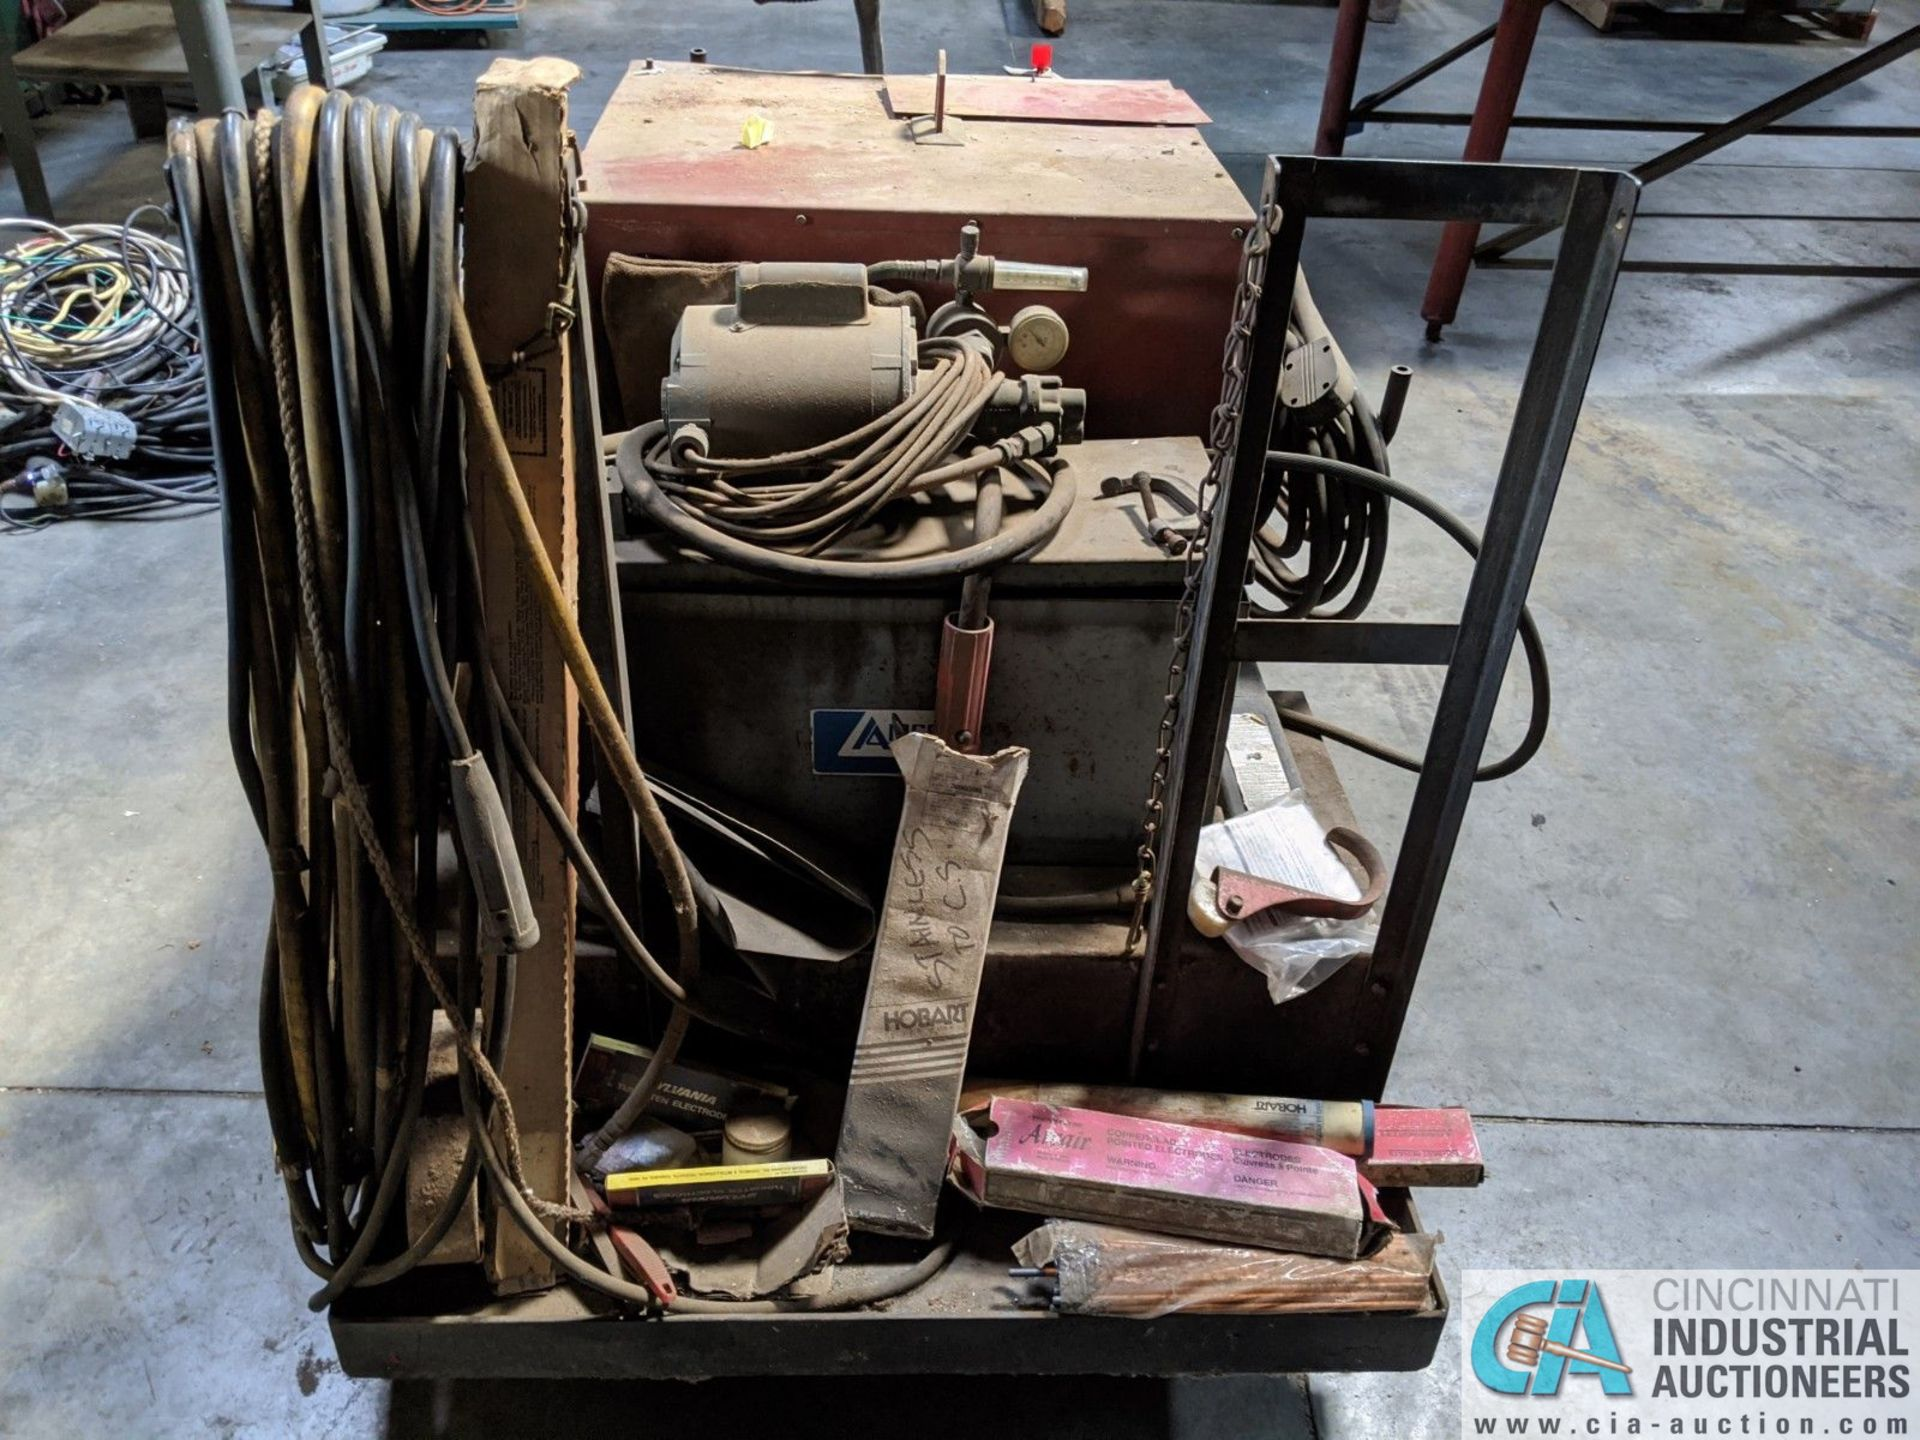 250 AMP LINCOLN MODEL TIG 250/250 WELDER; S/N 533770, MOUNTED ON CART W/ LEADS & AIRCO CHILLER (8635 - Image 3 of 5